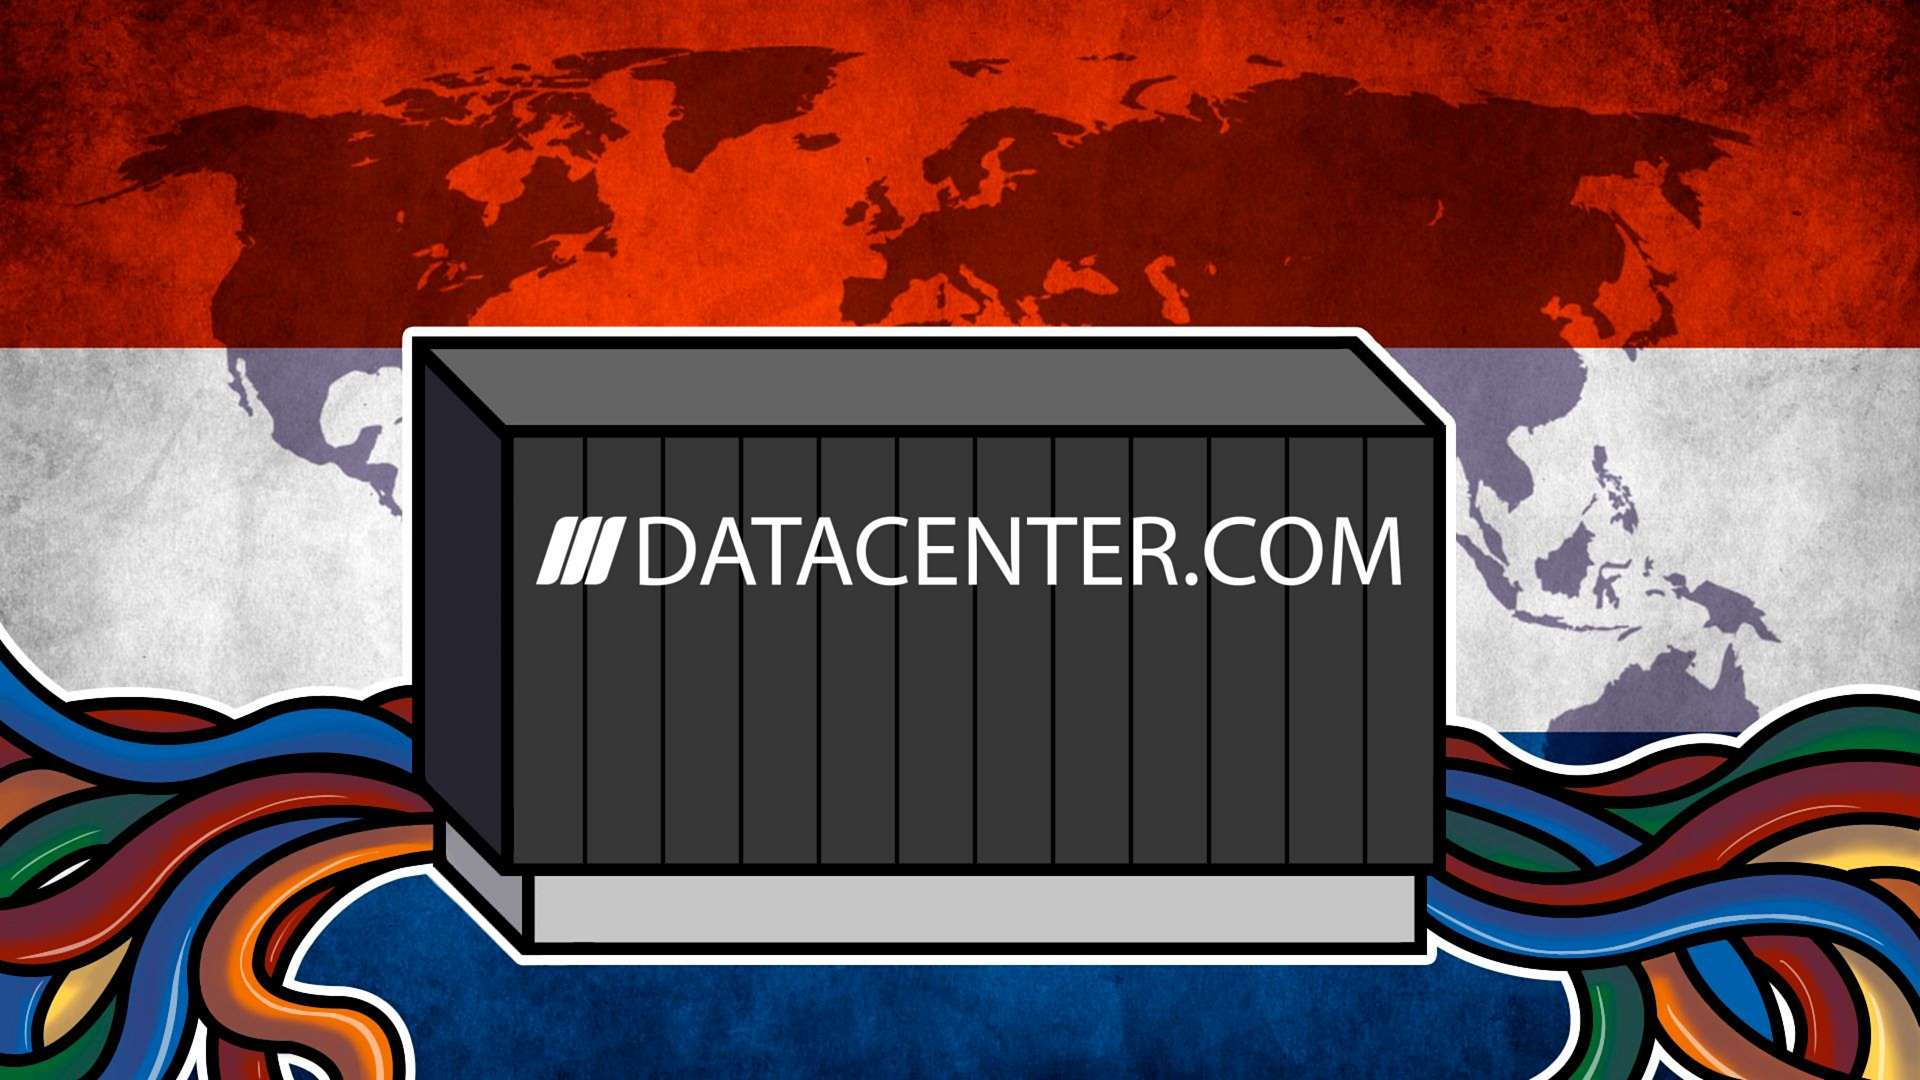 The Excellence Data Architecture Design Award is given to Datacenter.com